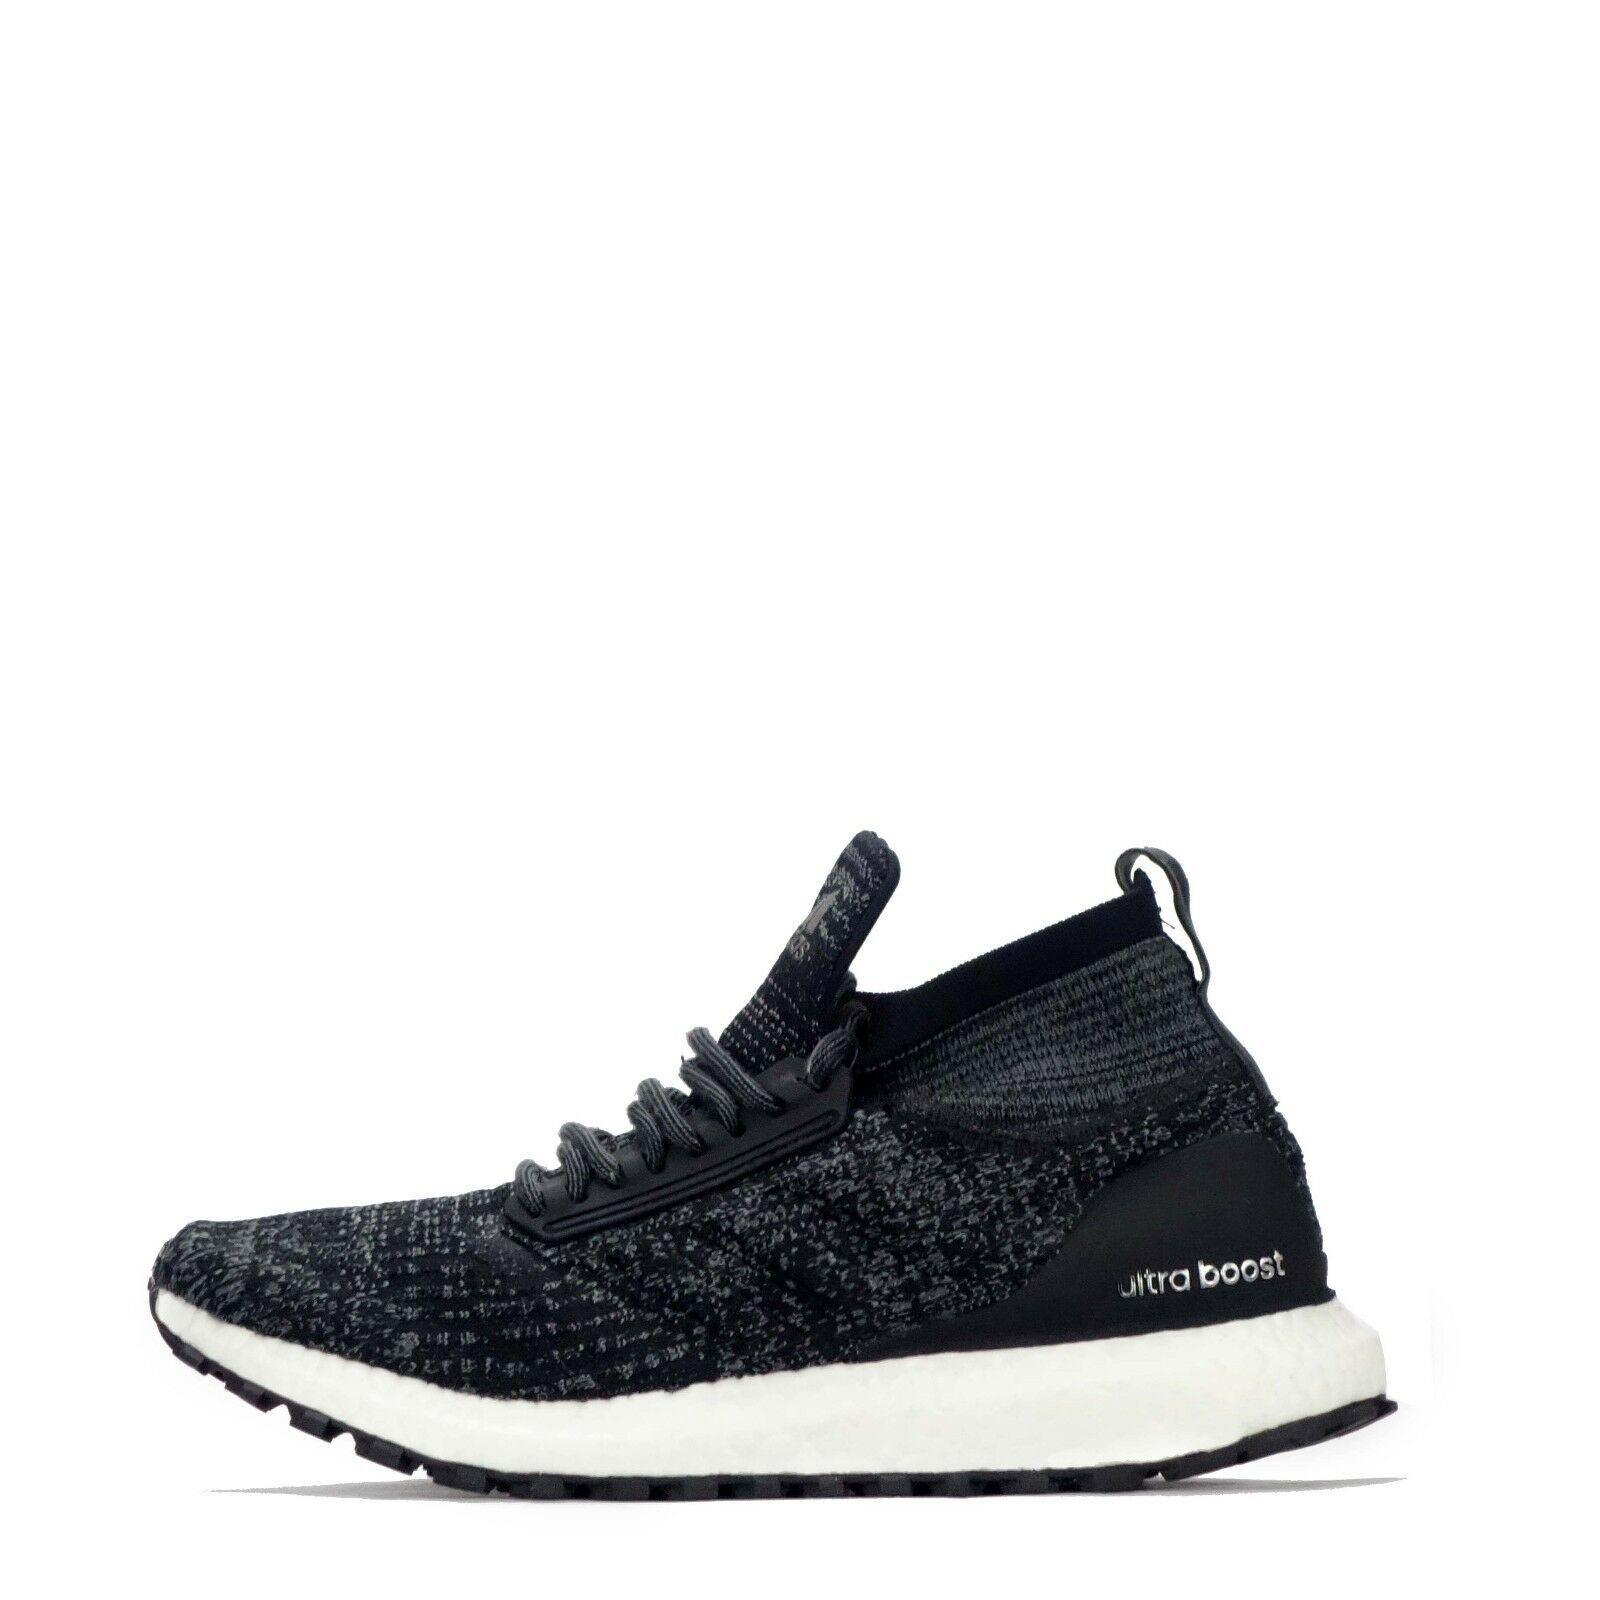 adidas Ultra Boost All Terrain Men's Mid Ankle Running Shoes Noir/ Gris